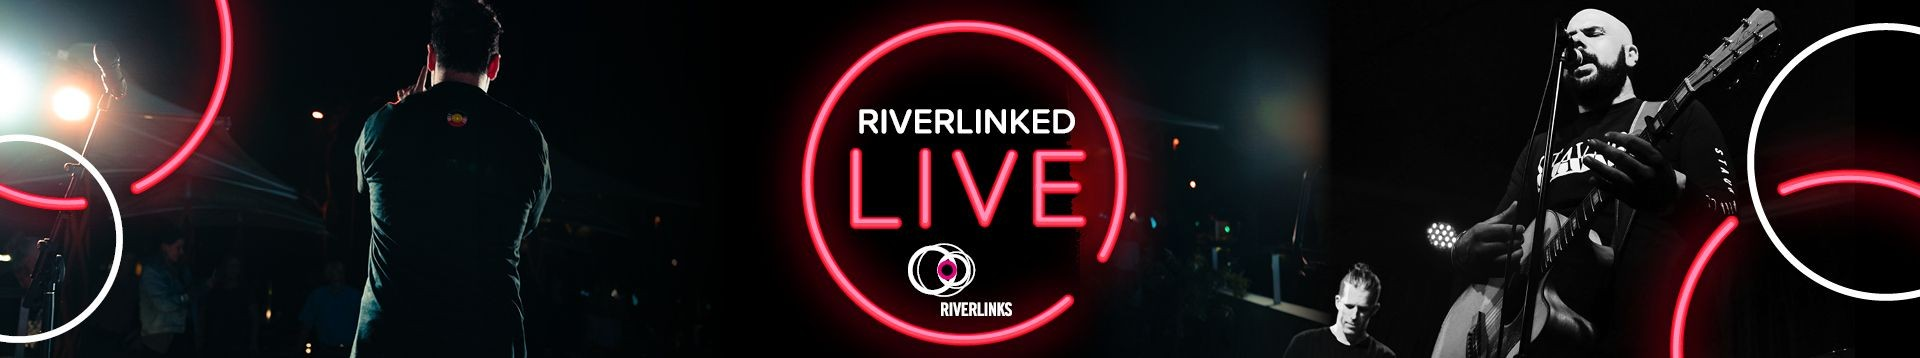 RiverLinked LIVE - Series 1